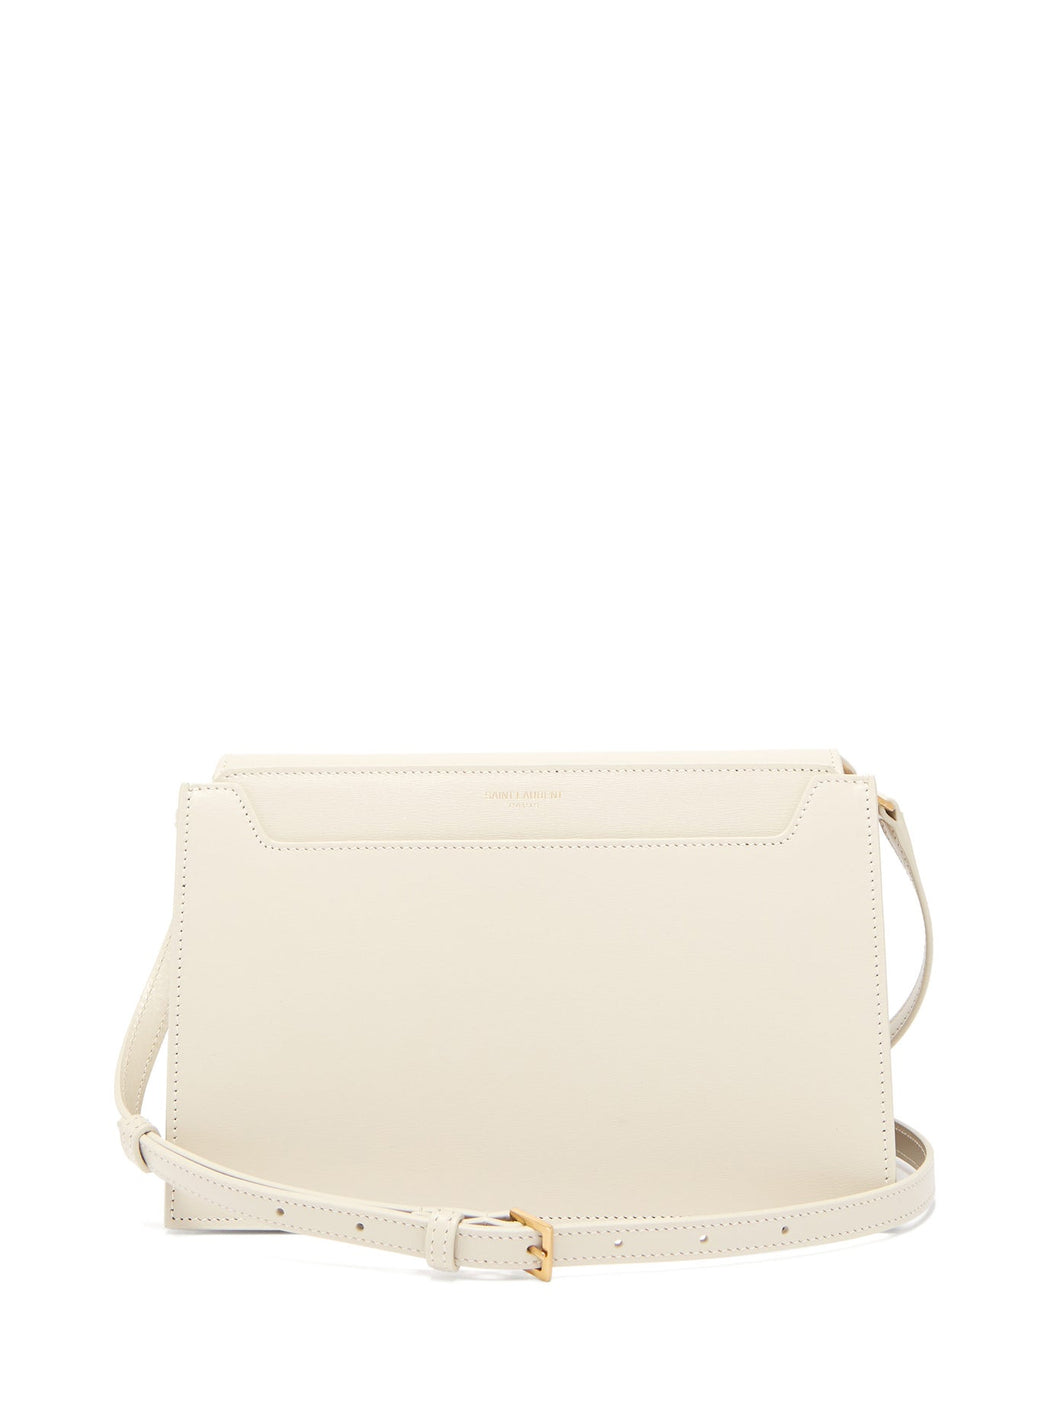 Catherine leather cross-body bag